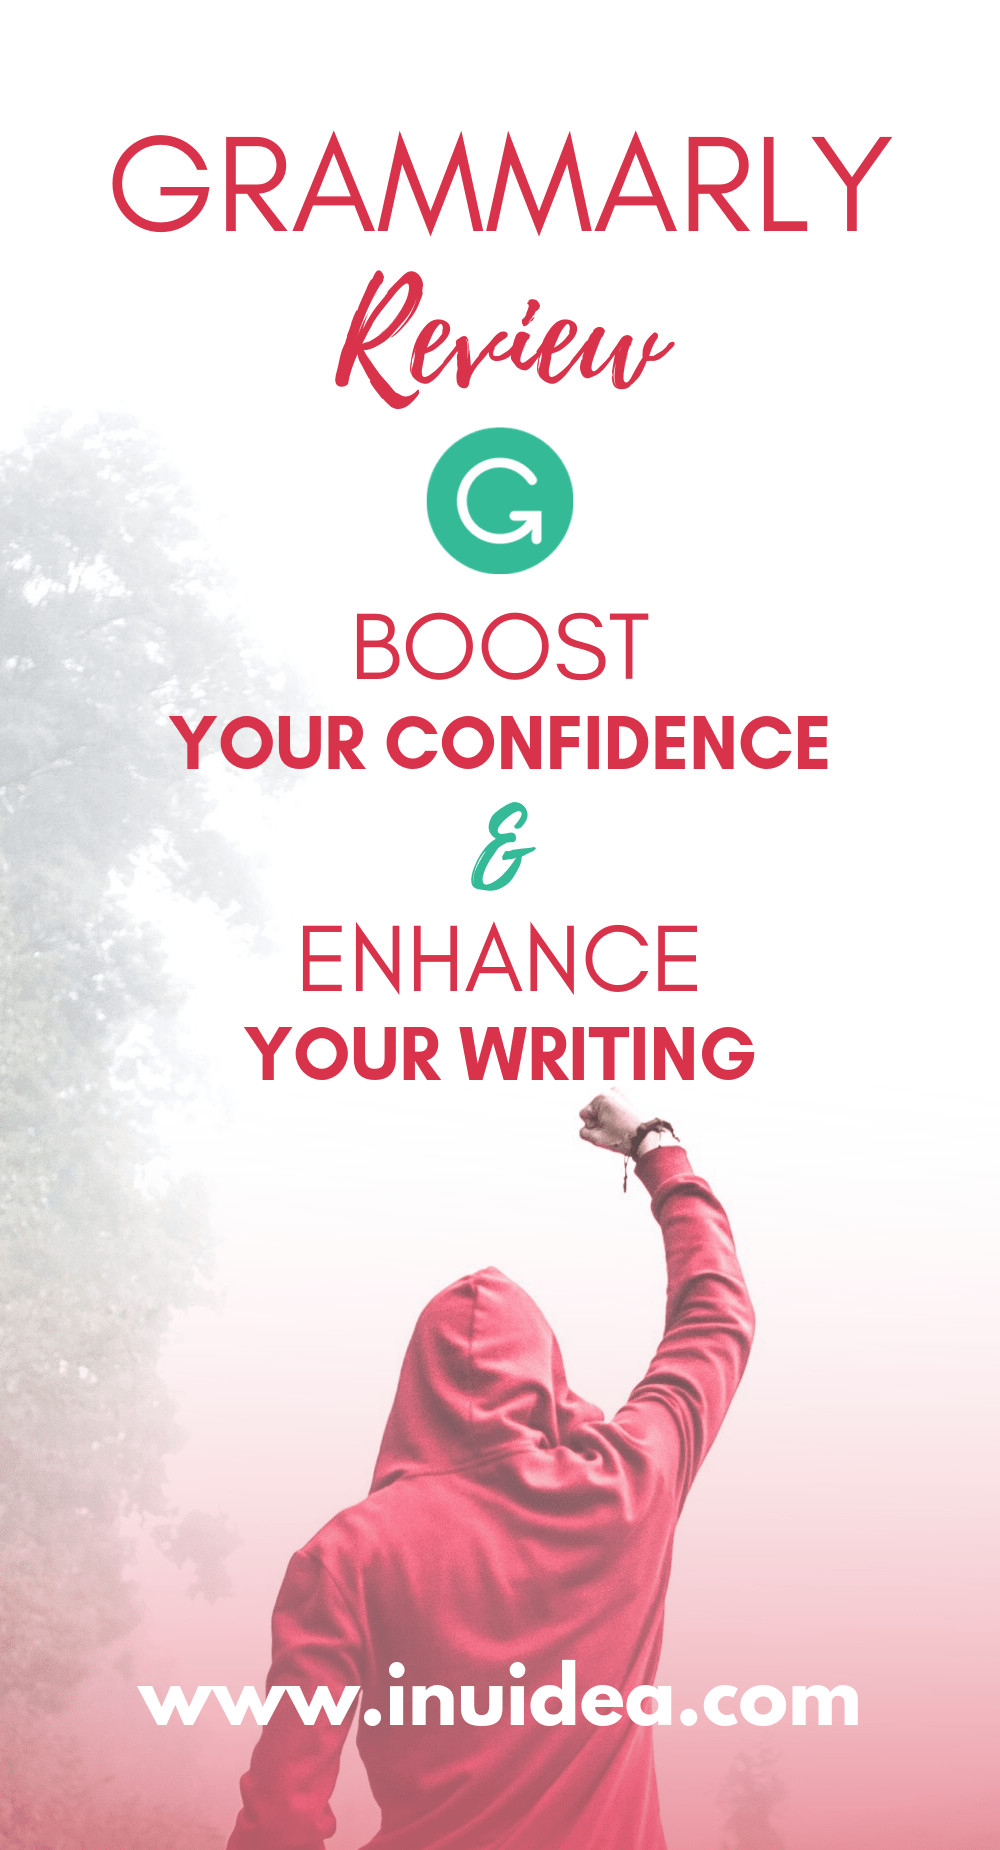 How To Make The Background Of Grammarly Darker